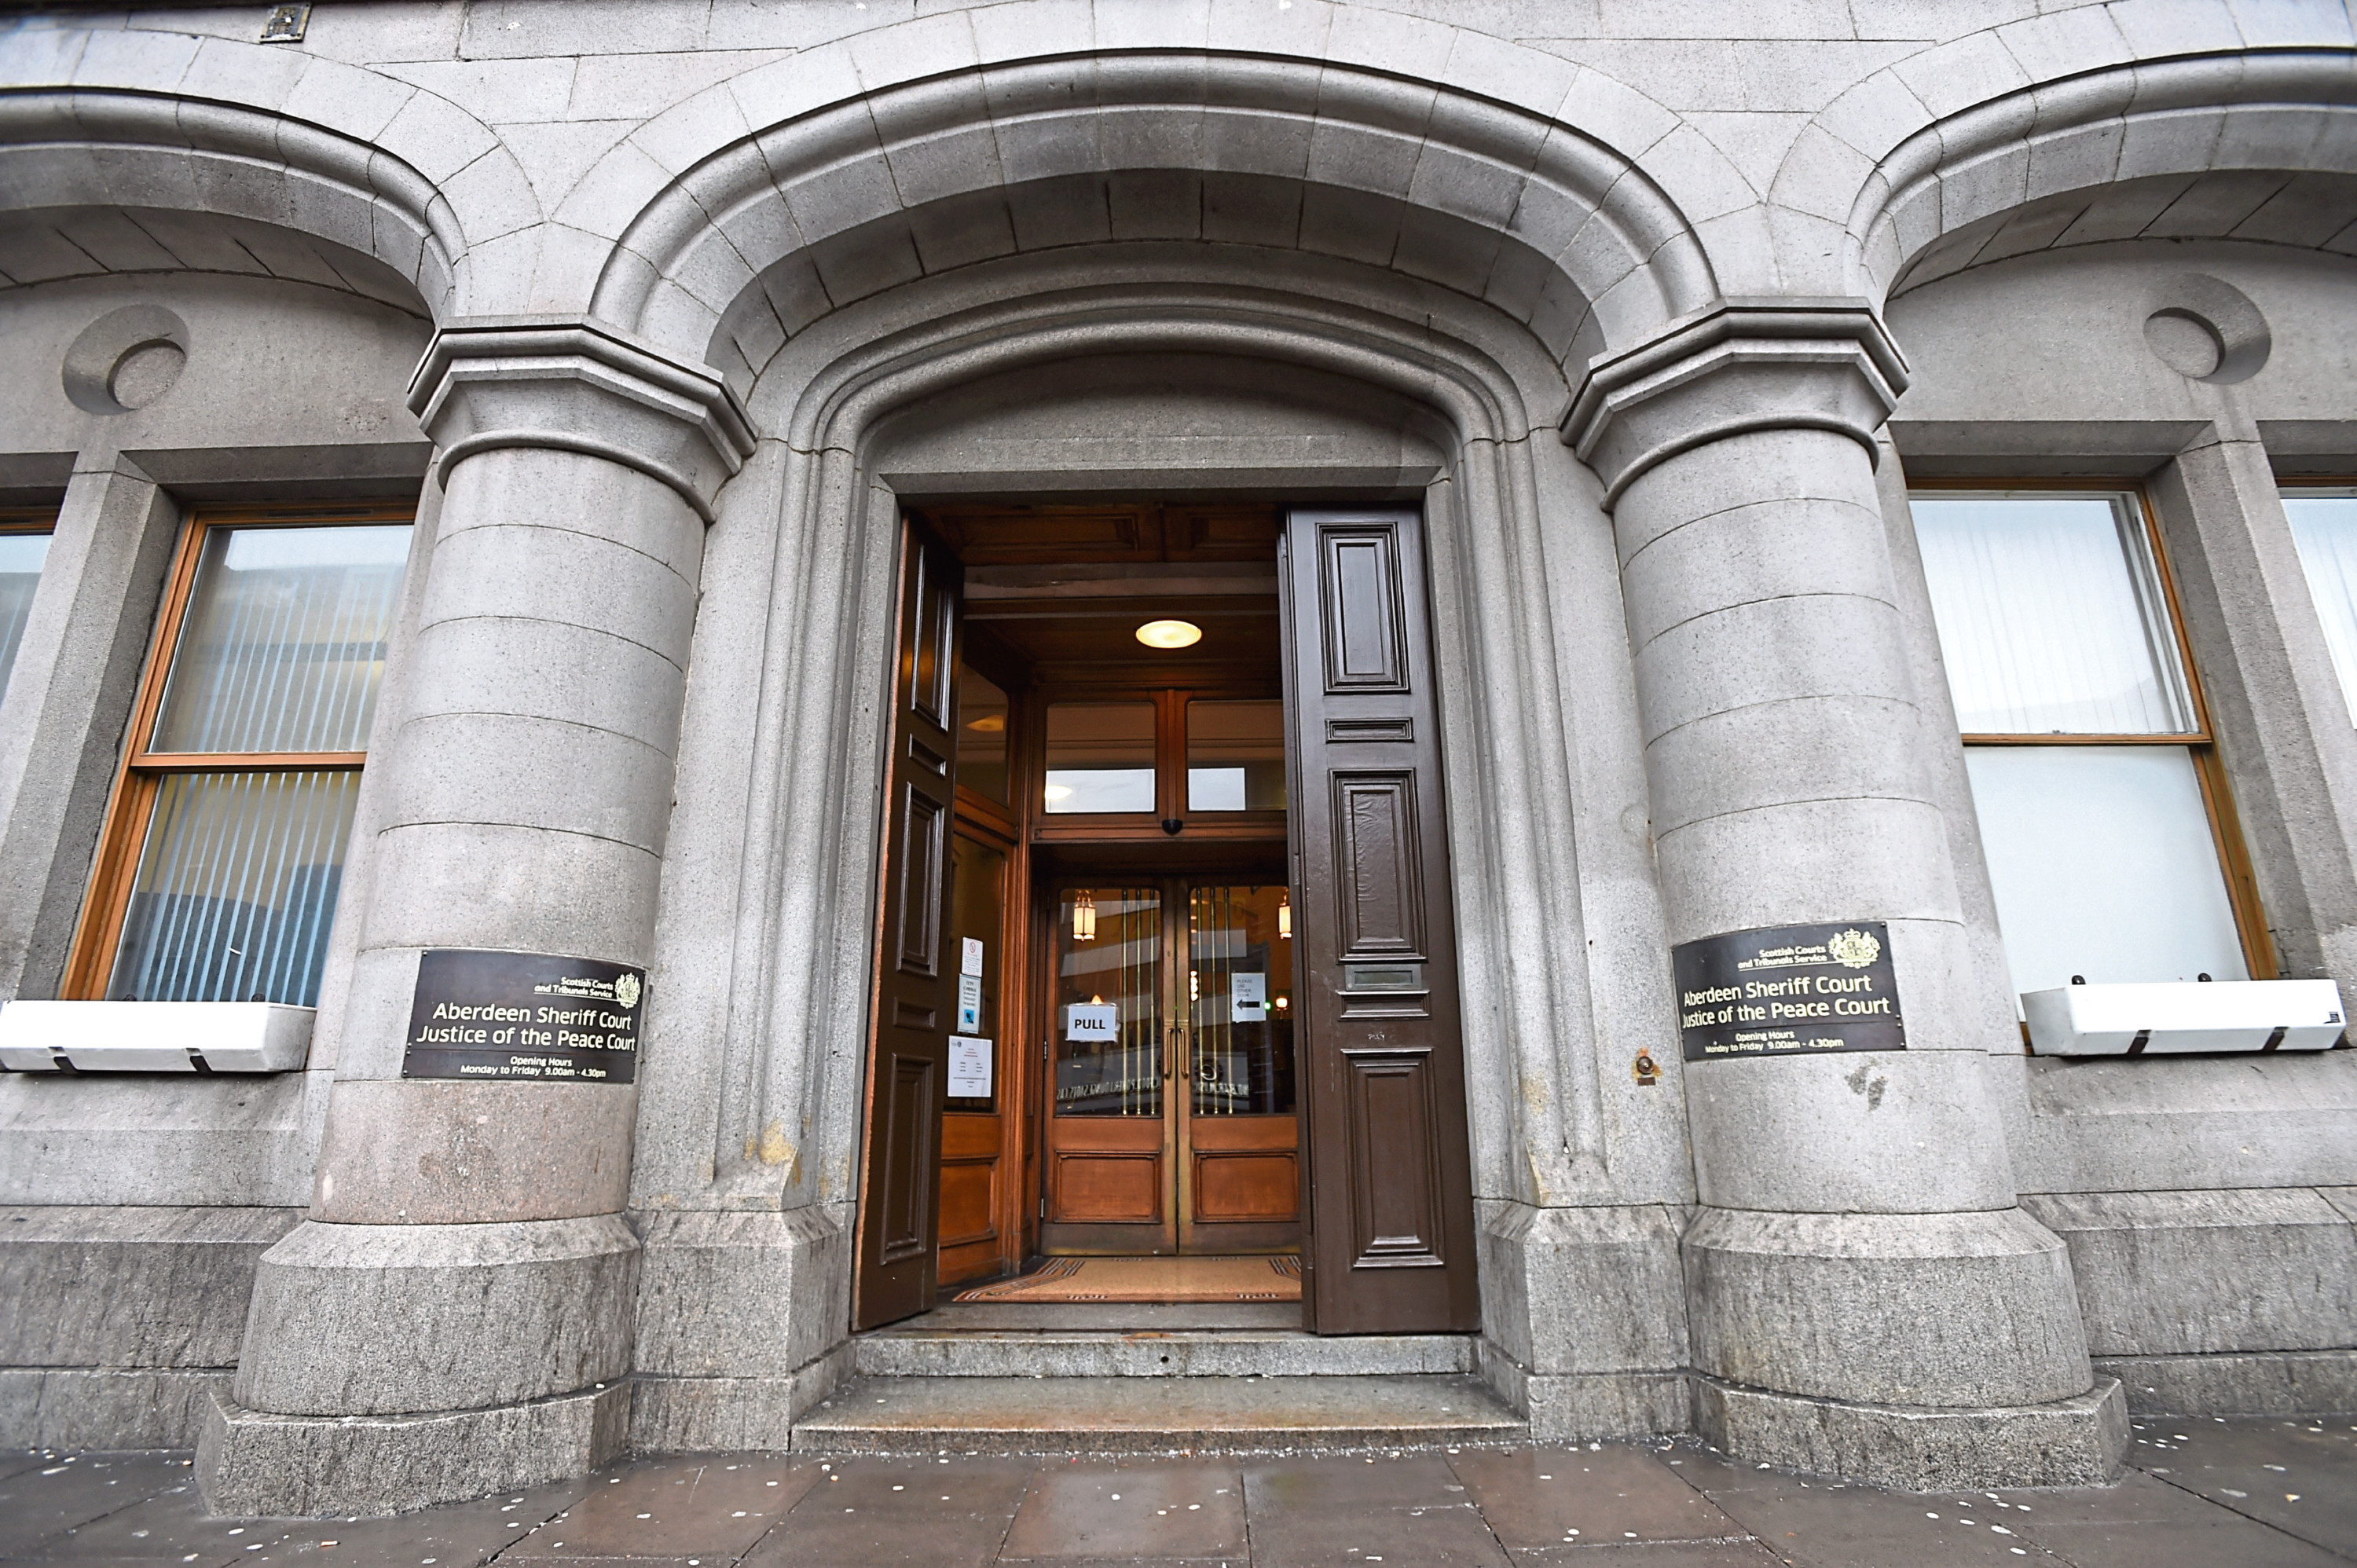 Aberdeen Sheriff Court stock